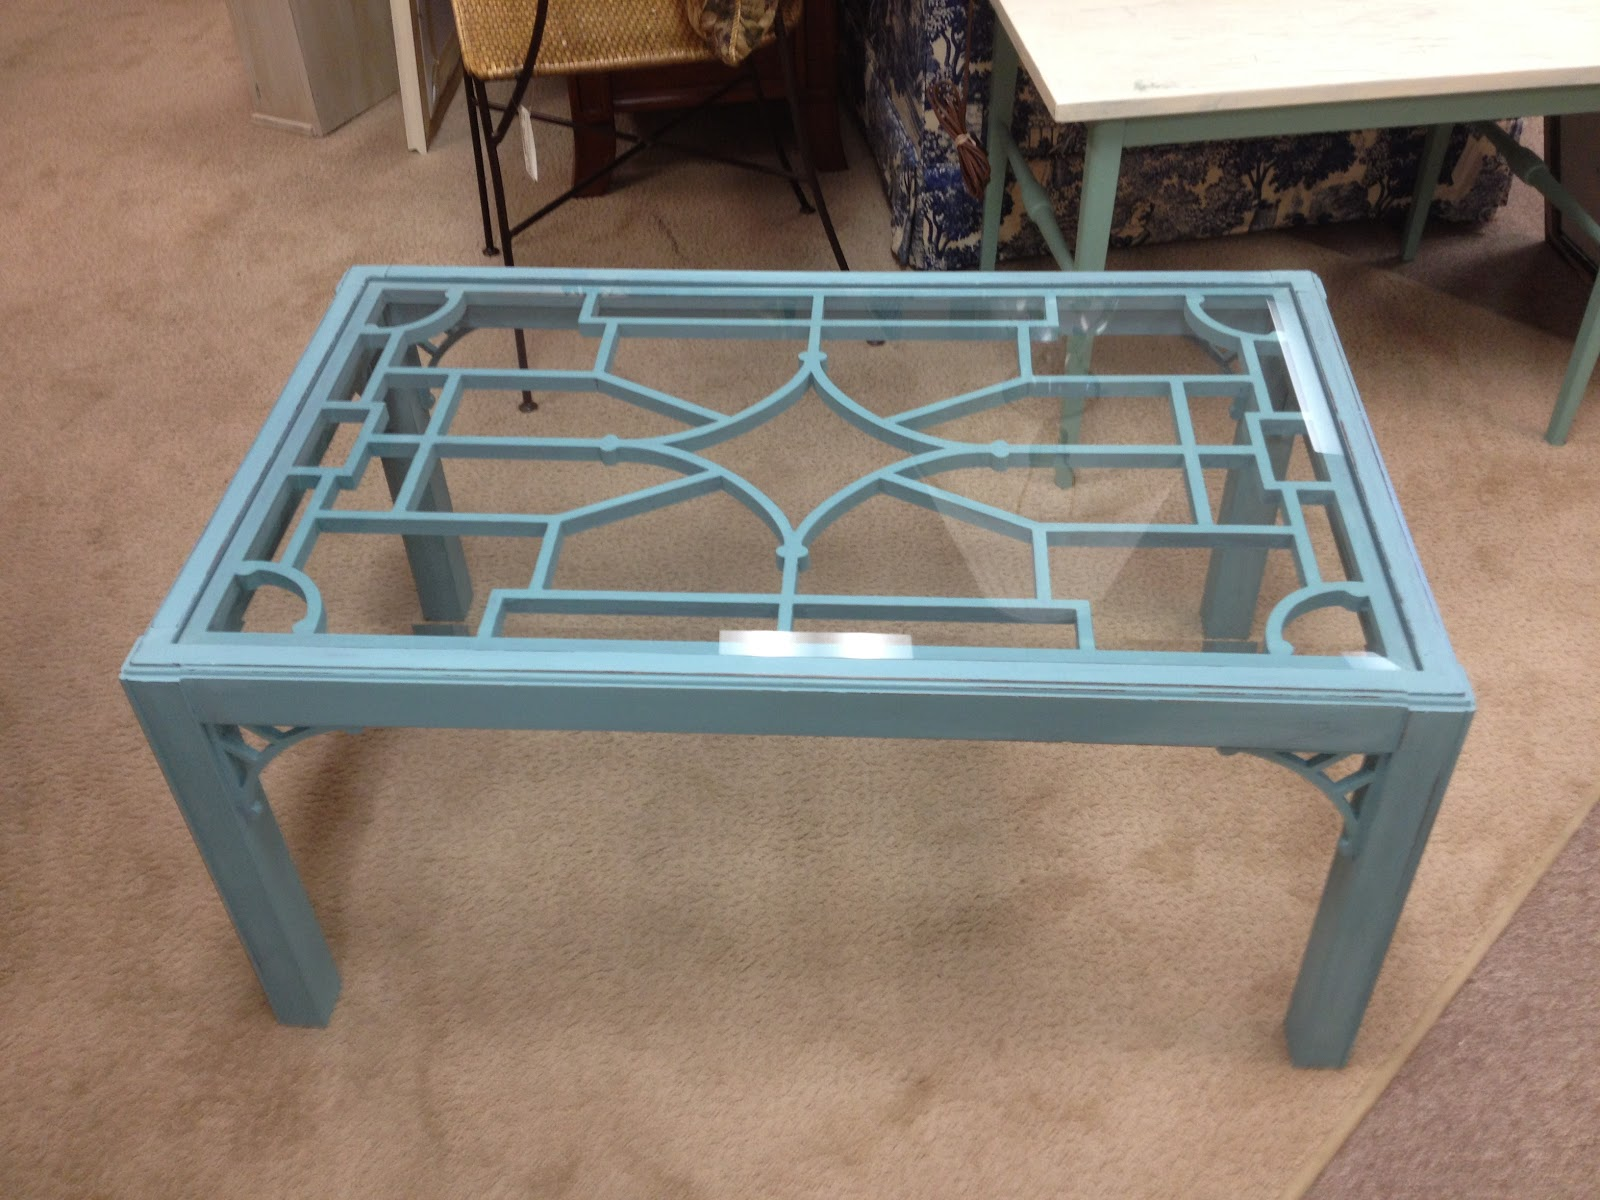 Sensible Redesign Chippendale Coffee Table